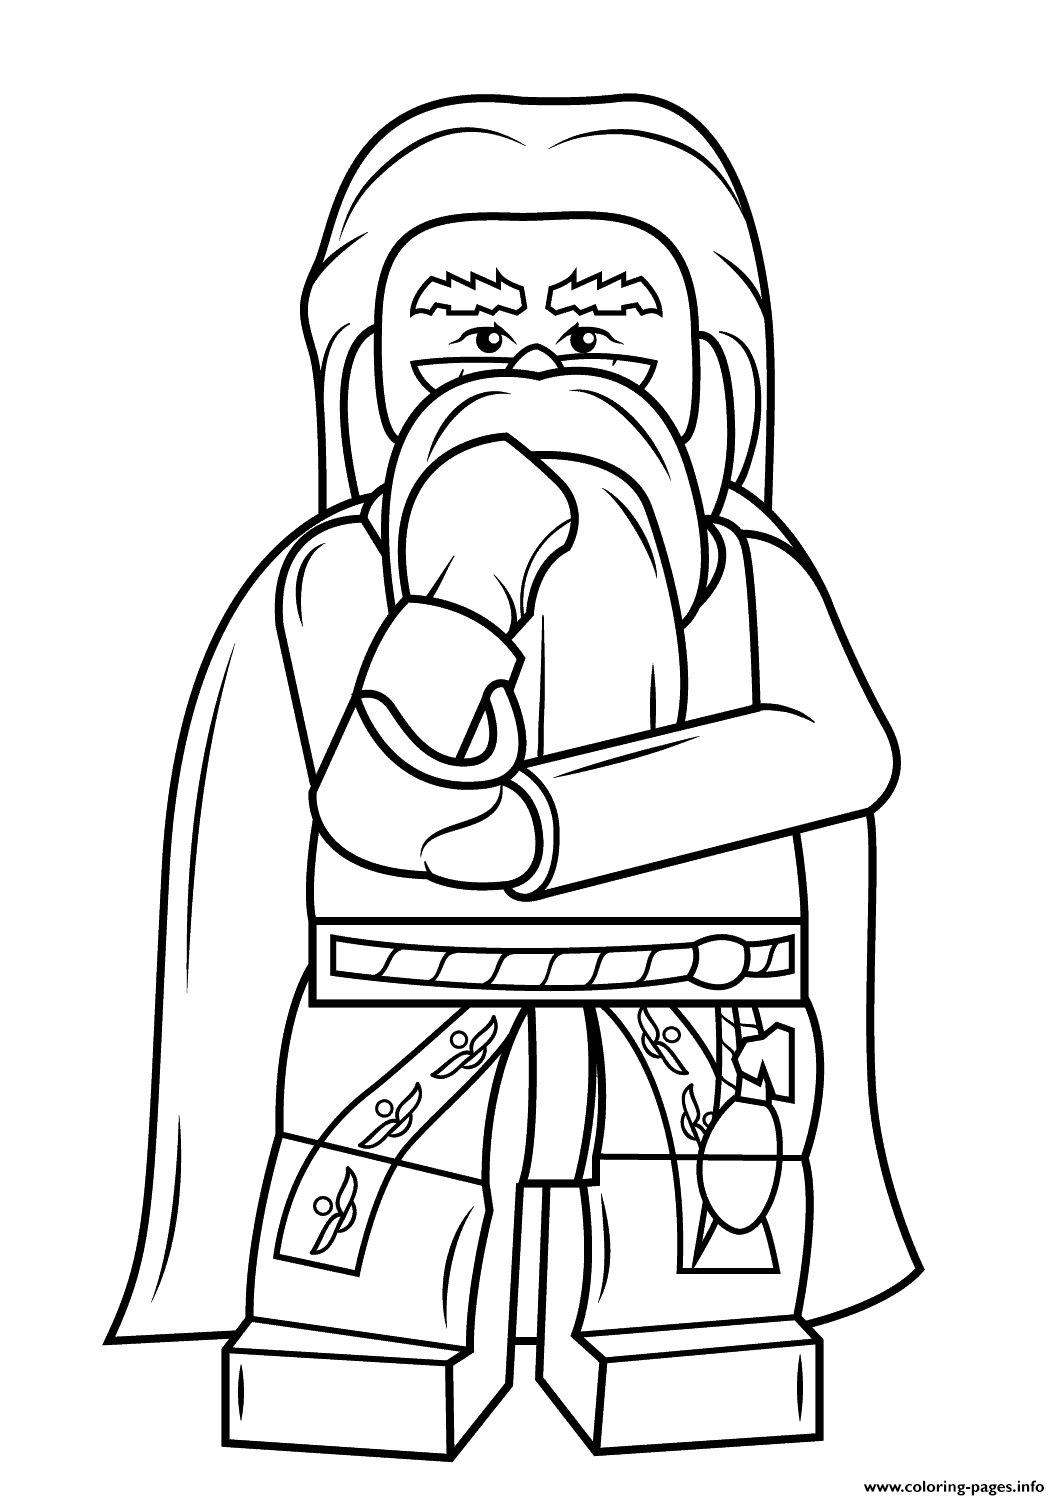 harry potter lego coloring pages free coloring pages printable pictures to color kids potter harry lego coloring pages